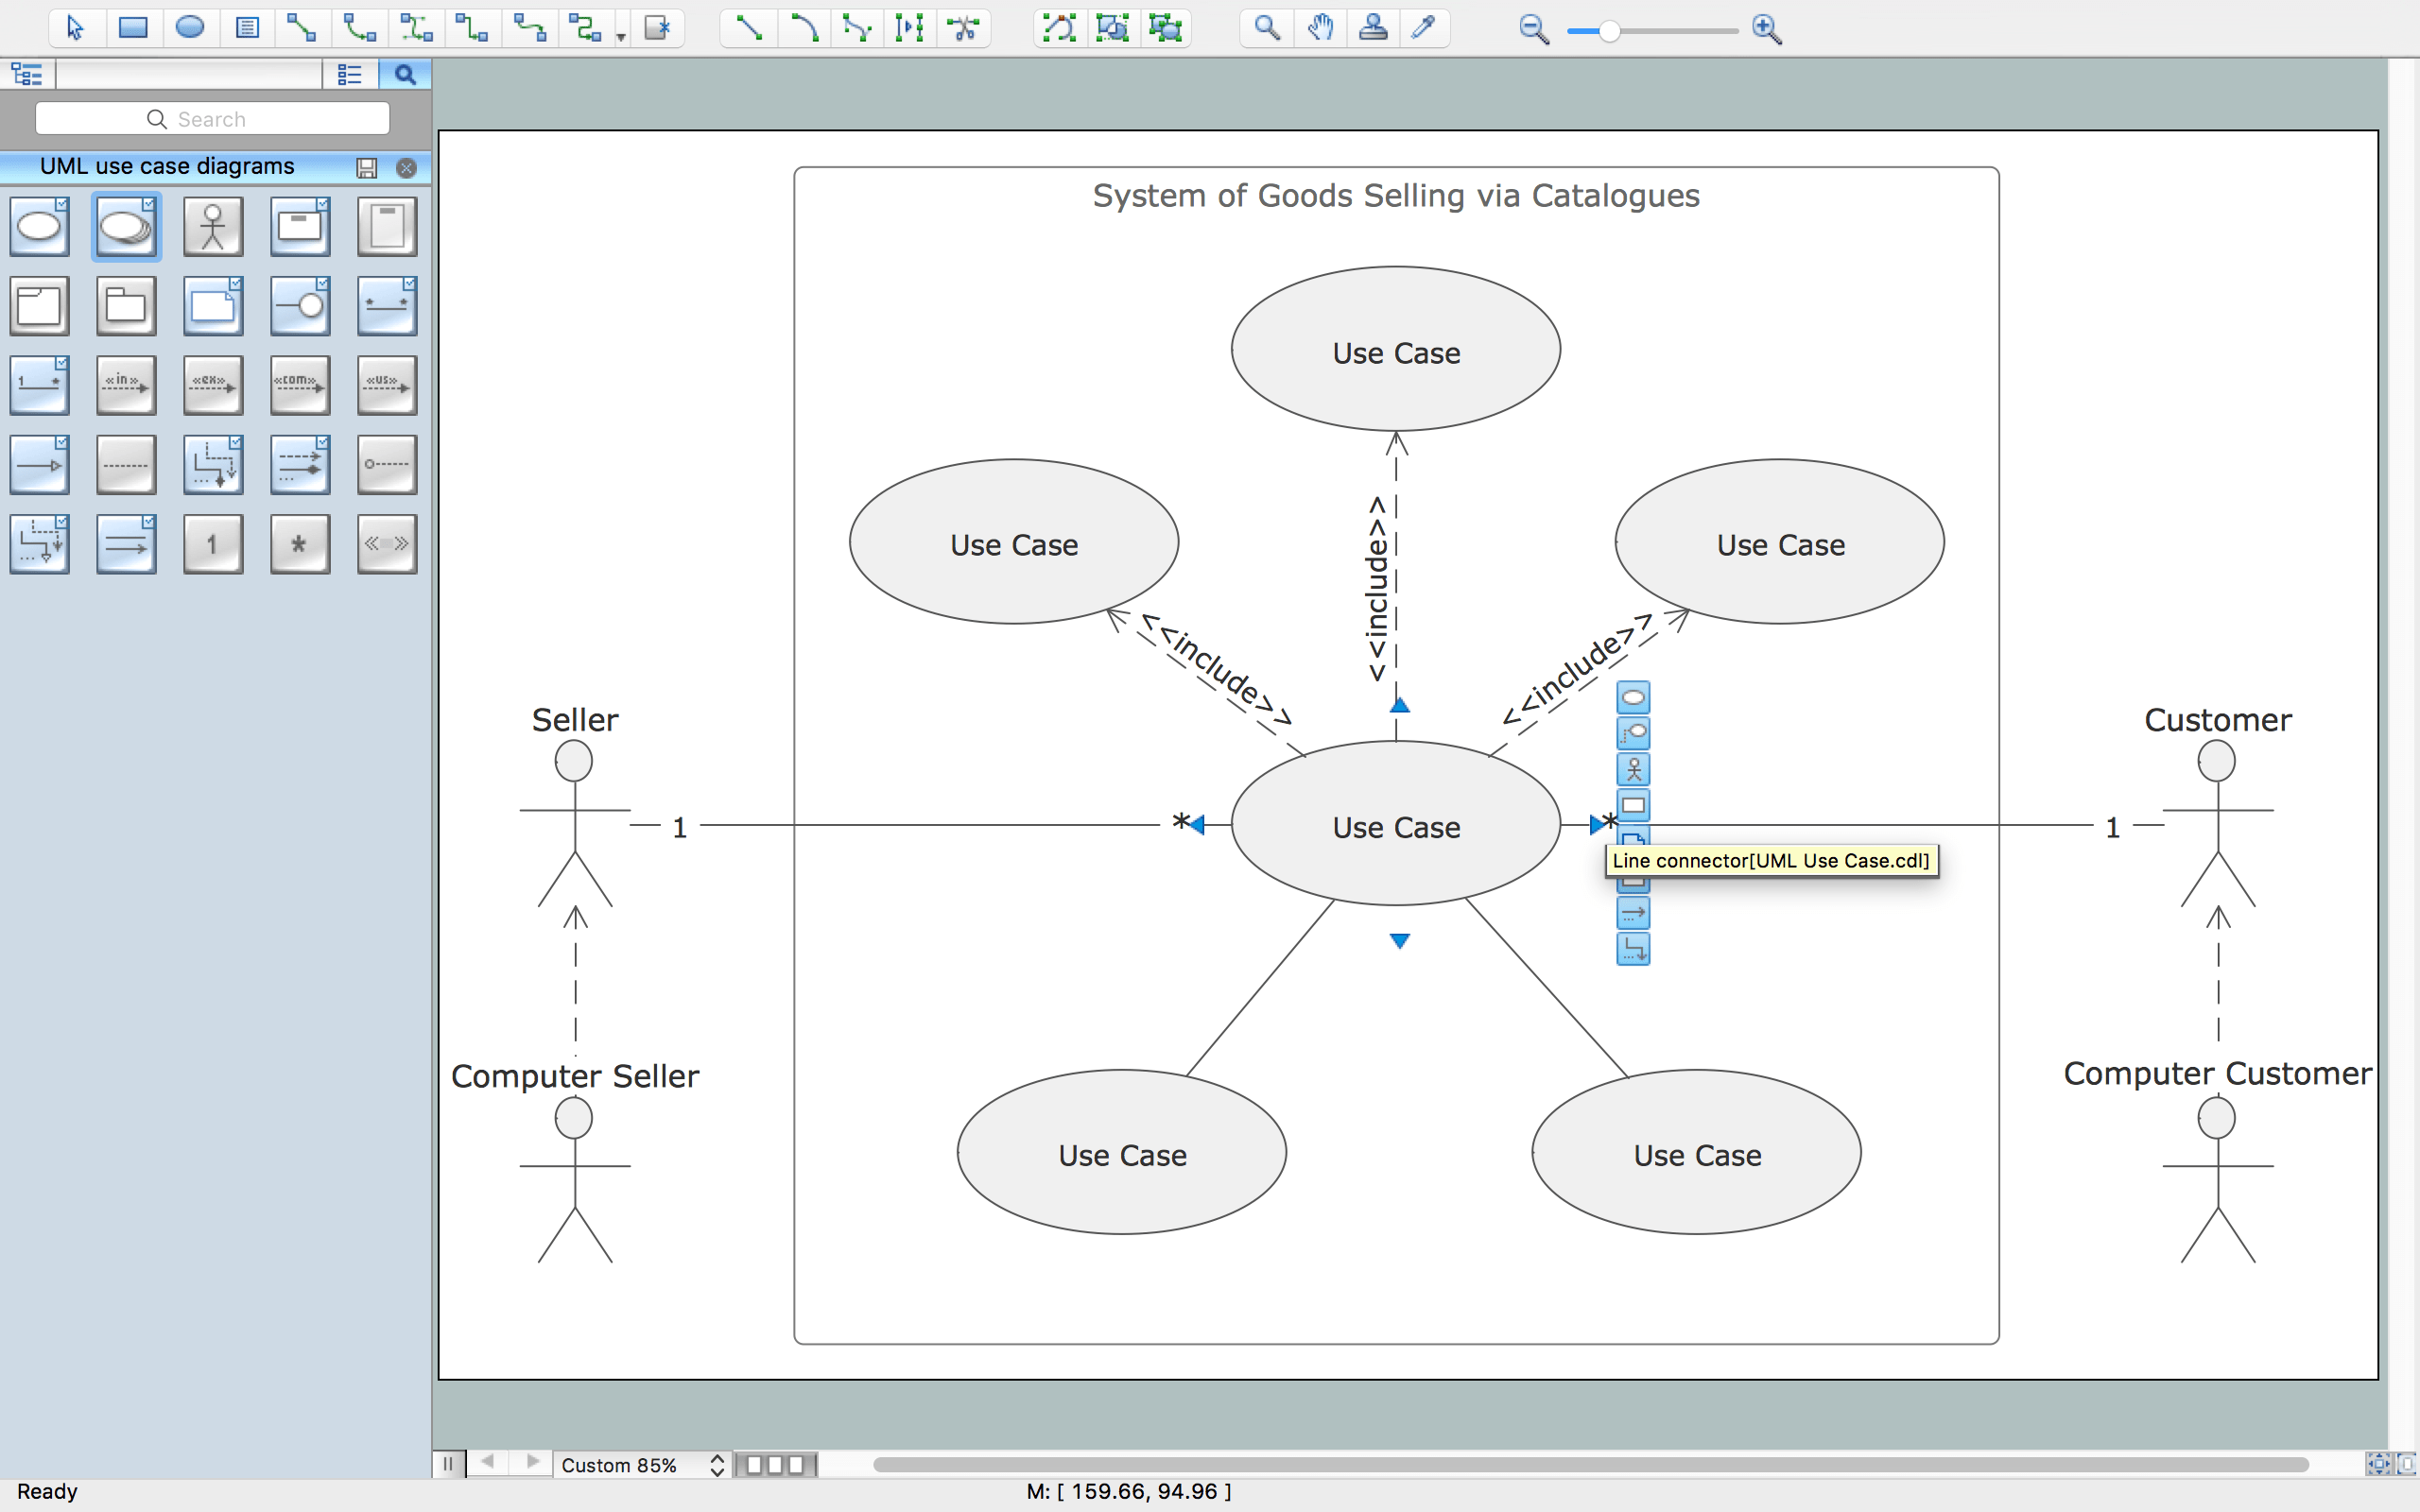 visio sequence diagram library kenwood ddx370 wiring financial trade uml use case example